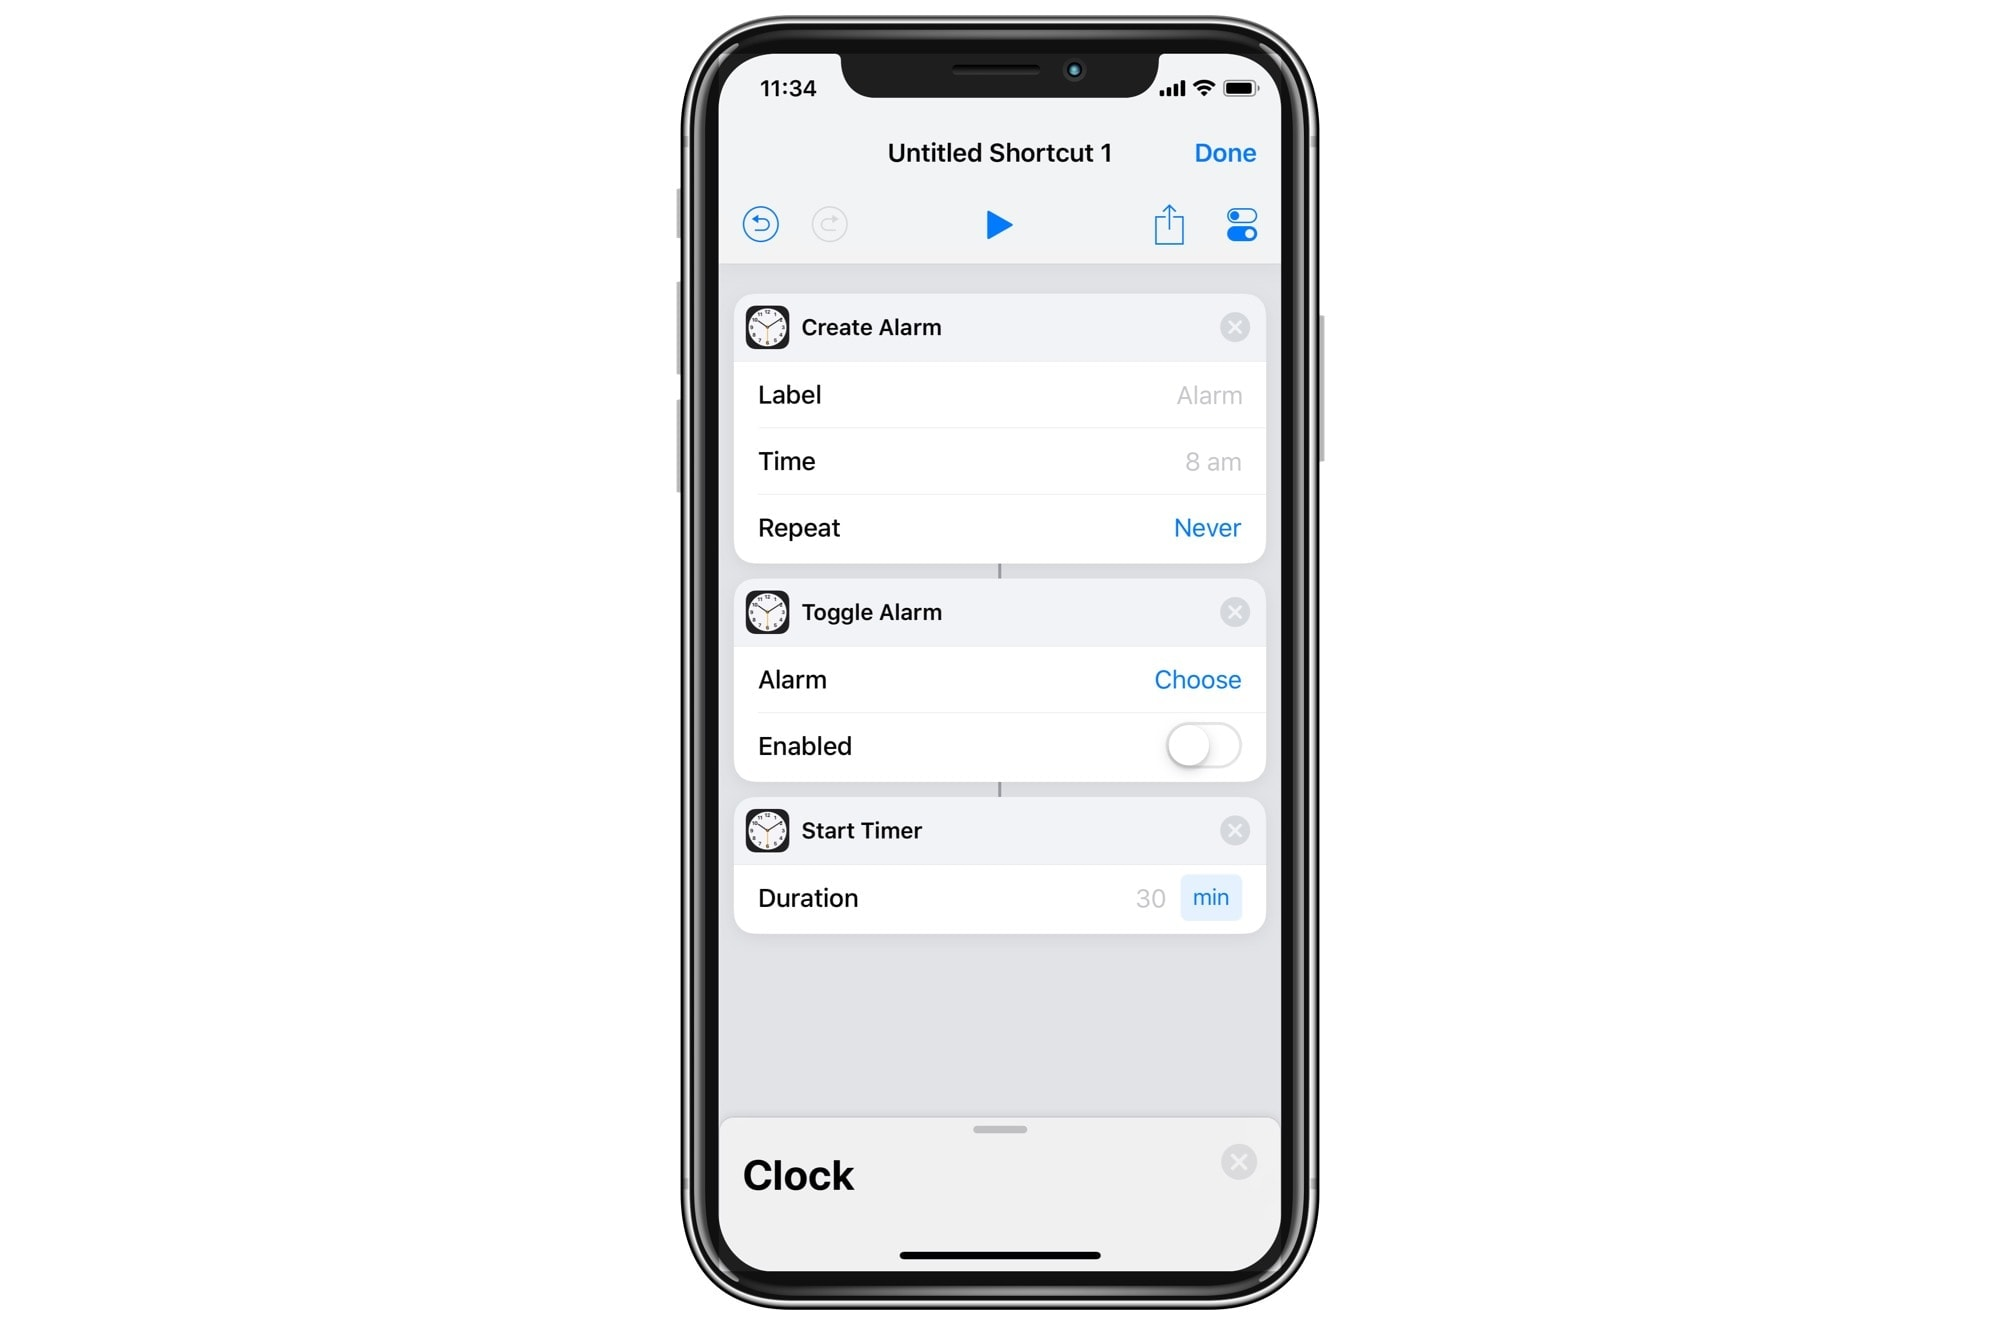 These new alarm actions allow for some powerful workflows.